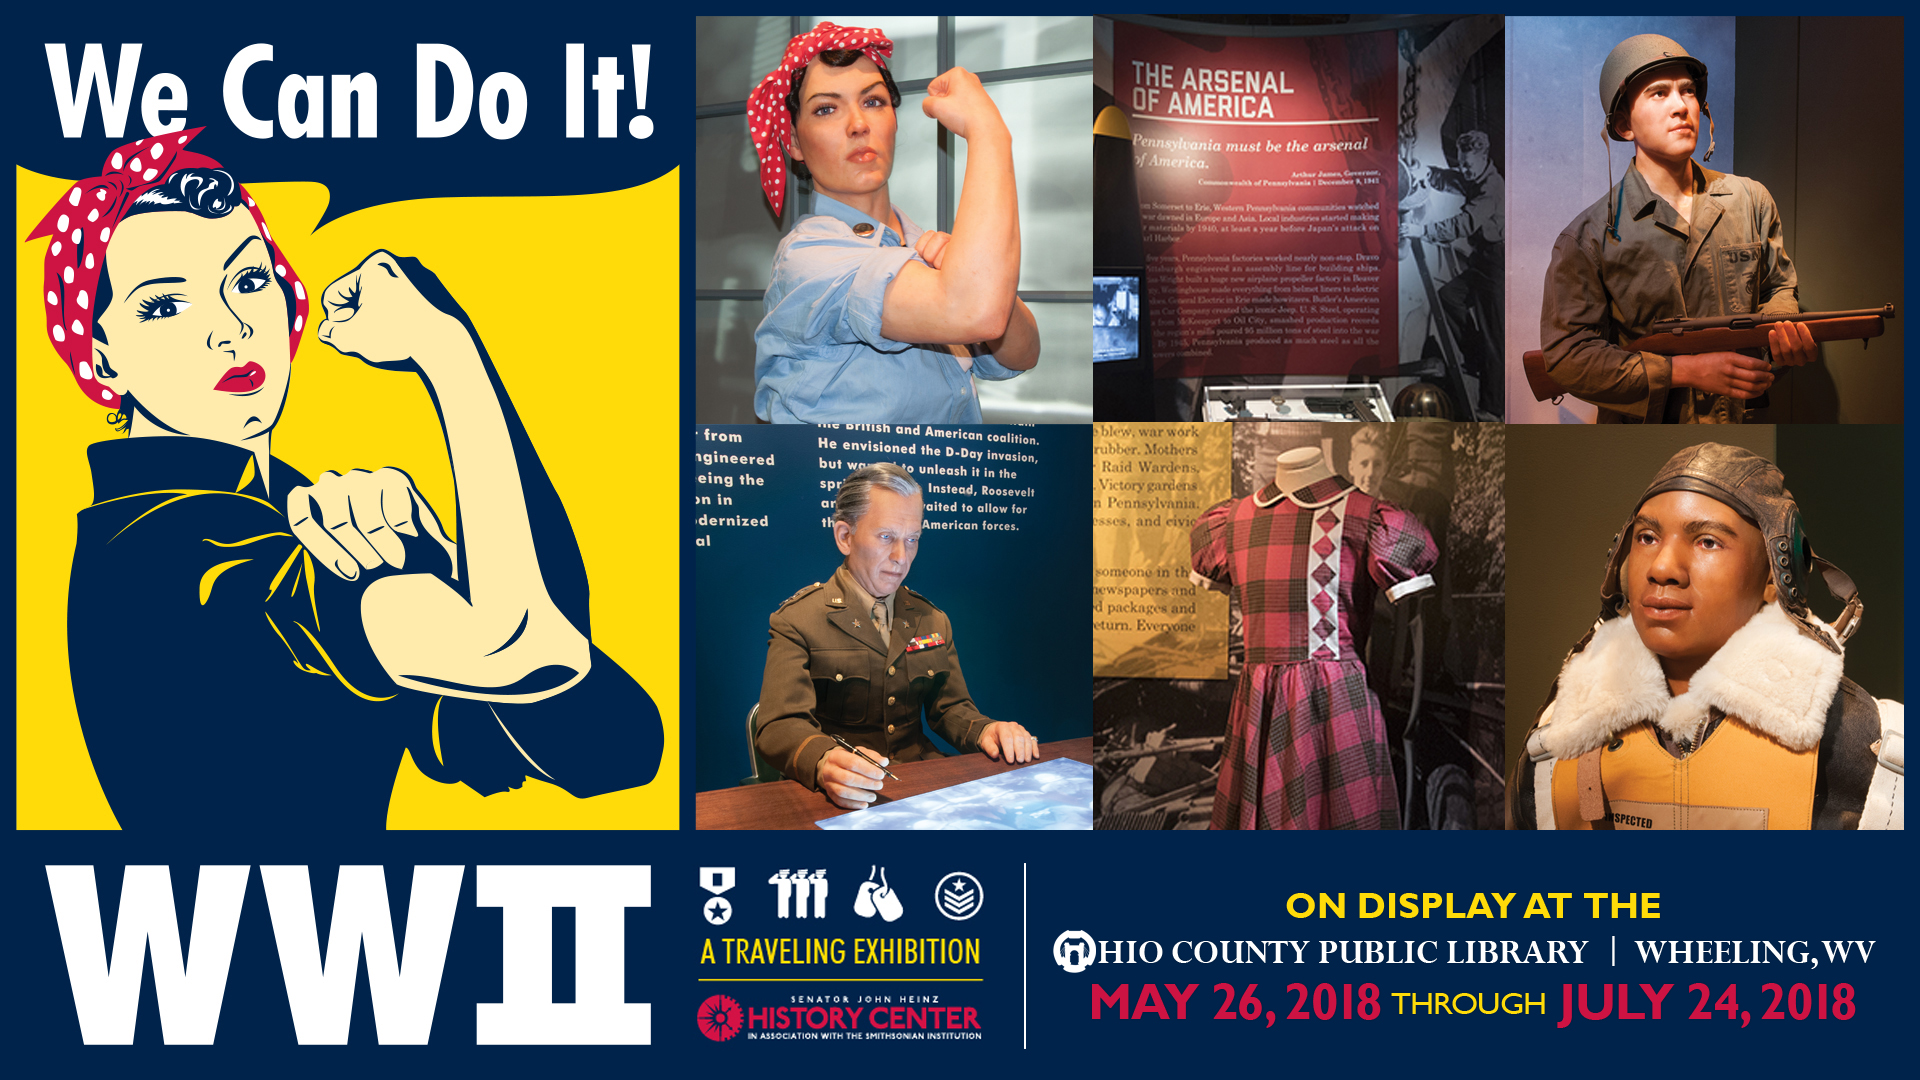 Heinz History Center WWII Traveling Exhibit will be at the Ohio County Public Library from May 26 to July 24, 2018/